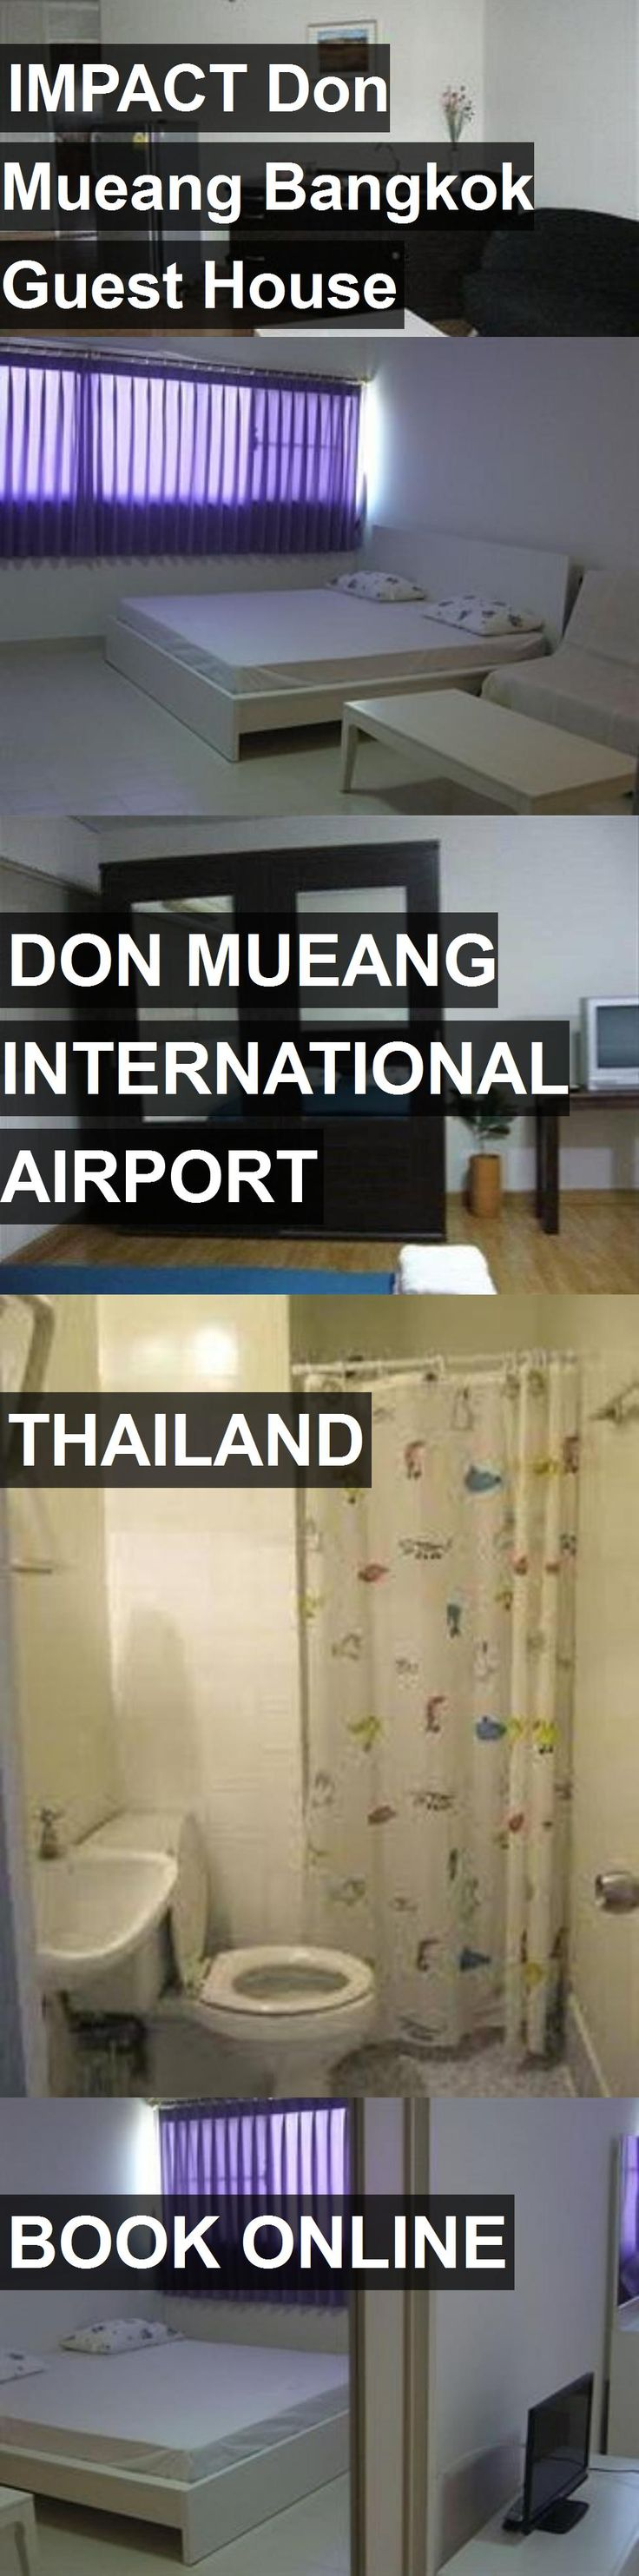 Hotel IMPACT Don Mueang Bangkok Guest House in Don Mueang International Airport, Thailand. For more information, photos, reviews and best prices please follow the link. #Thailand #DonMueangInternationalAirport #IMPACTDonMueangBangkokGuestHouse #hotel #travel #vacation